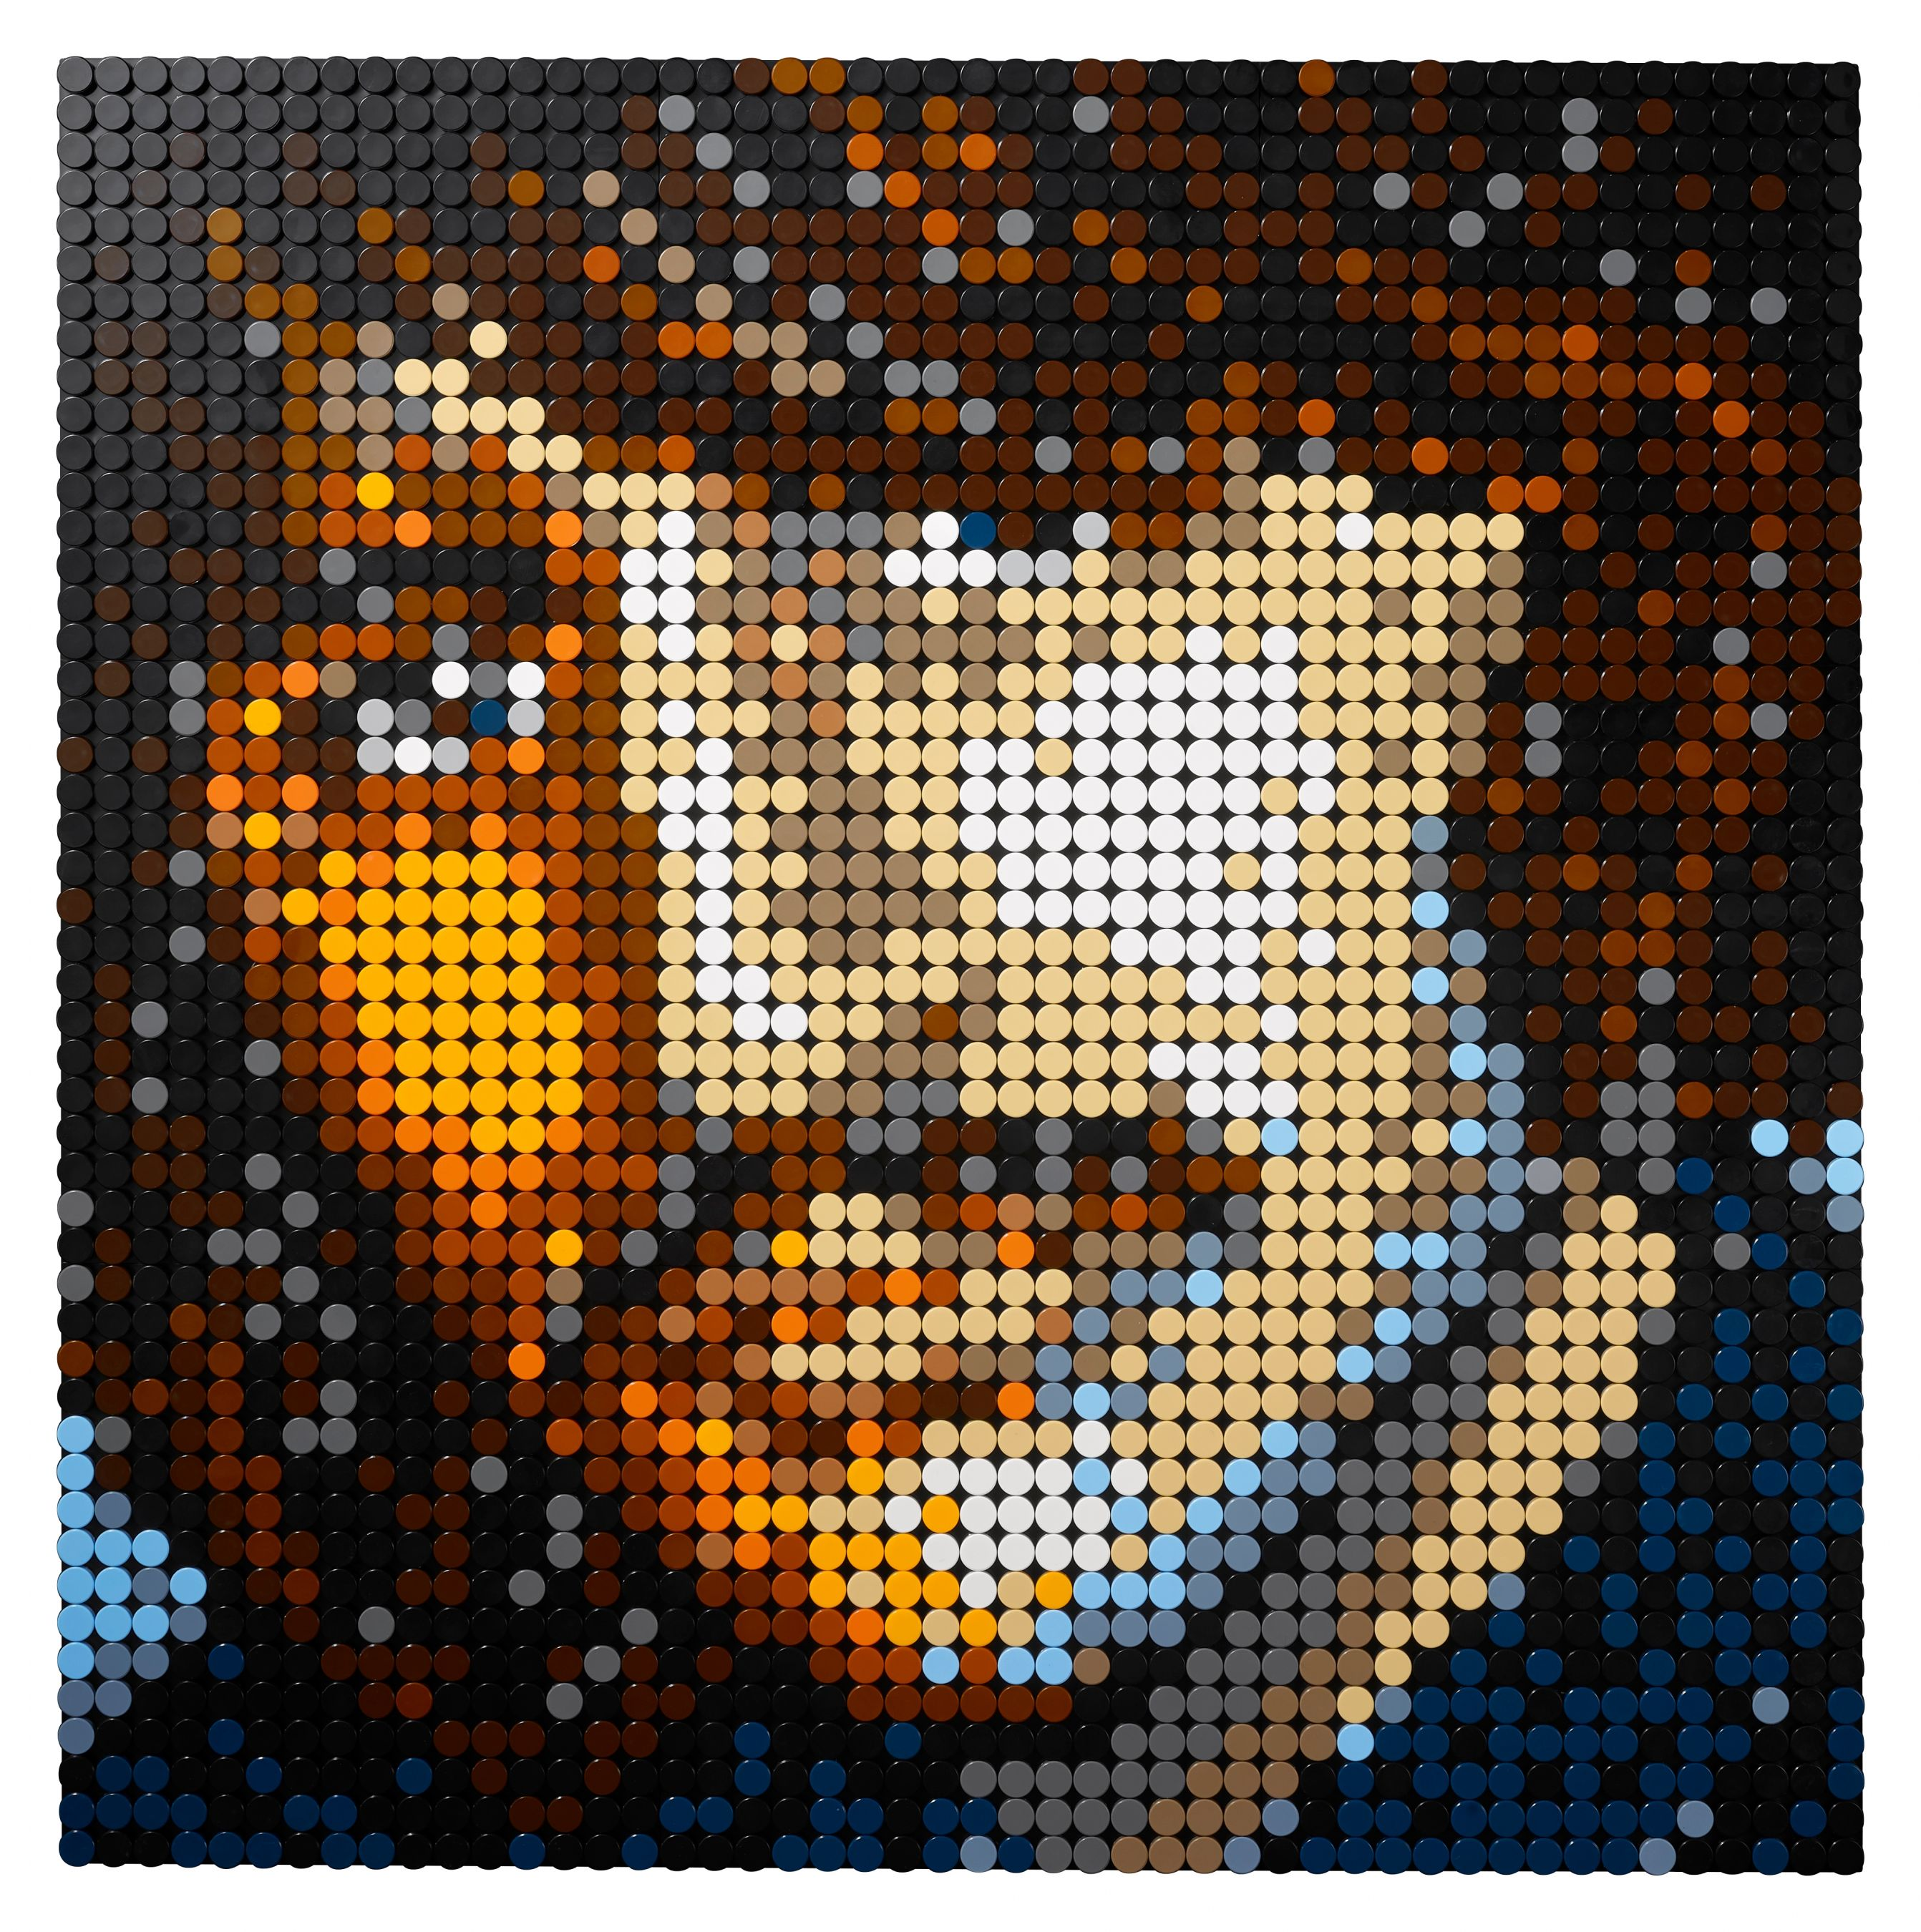 LEGO Art 31198 The Beatles LEGO_31198_alt4.jpg